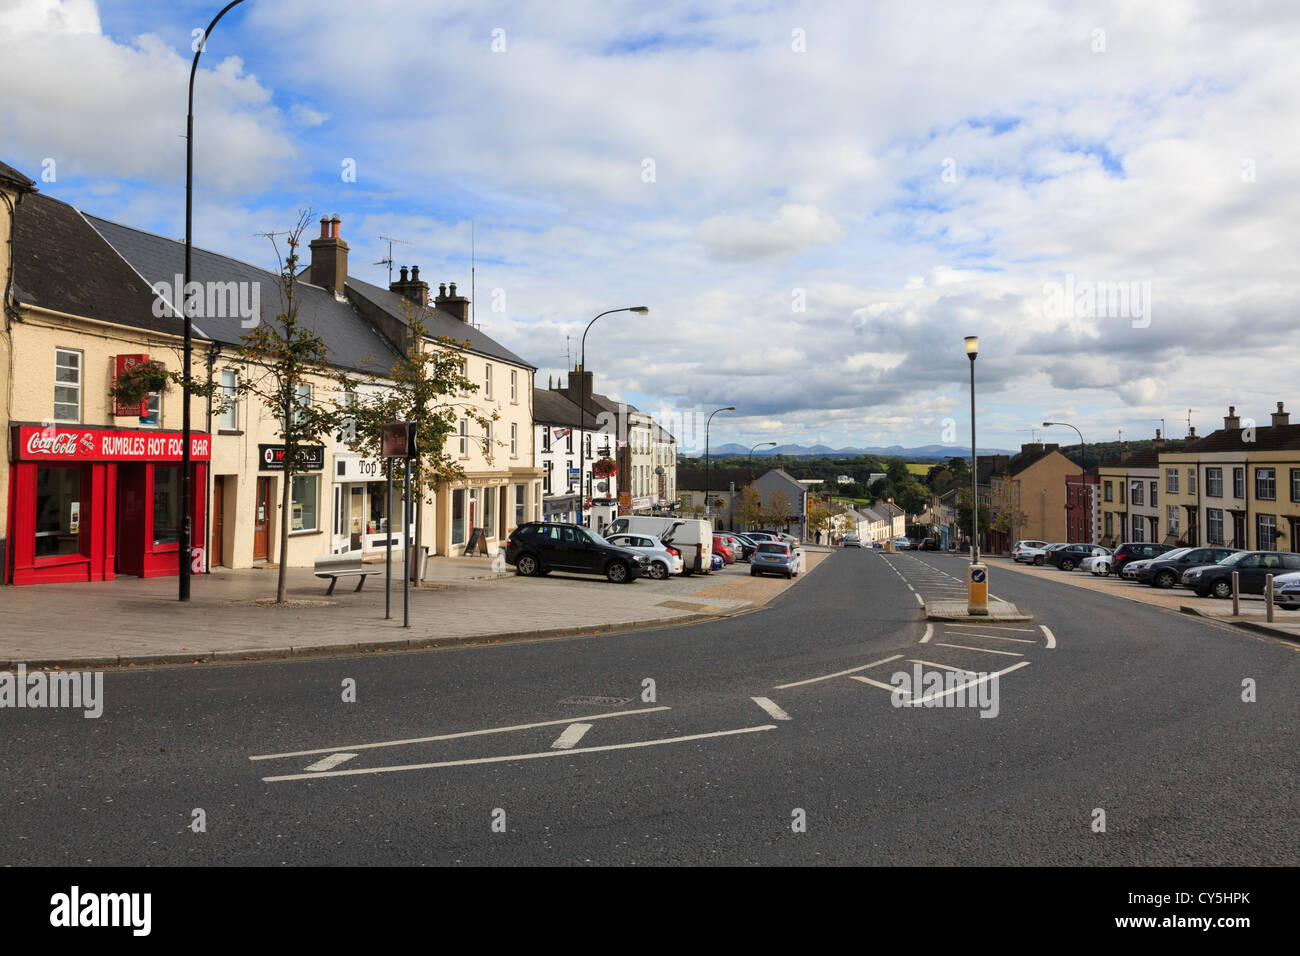 plane crash video a27 with Stock Photo Shops And Cafes On The A27 Road Through The Village Of Tandragee County 51140171 on 430093833145141931 further Family Personal Trainer 24 Killed Jet Crash Returning Australia Left Panicked Facebook Posts Trying Hours Following Disaster also Just Yards Shoreham Air Disaster Fireball Planespotter Came Closest Death Survived furthermore Shoreham Airshow Plane Crash Driver BMW Escape Alive in addition Shoreham Airshow Plane Crash Disaster Sister S Torment Searches News Missing Brother.